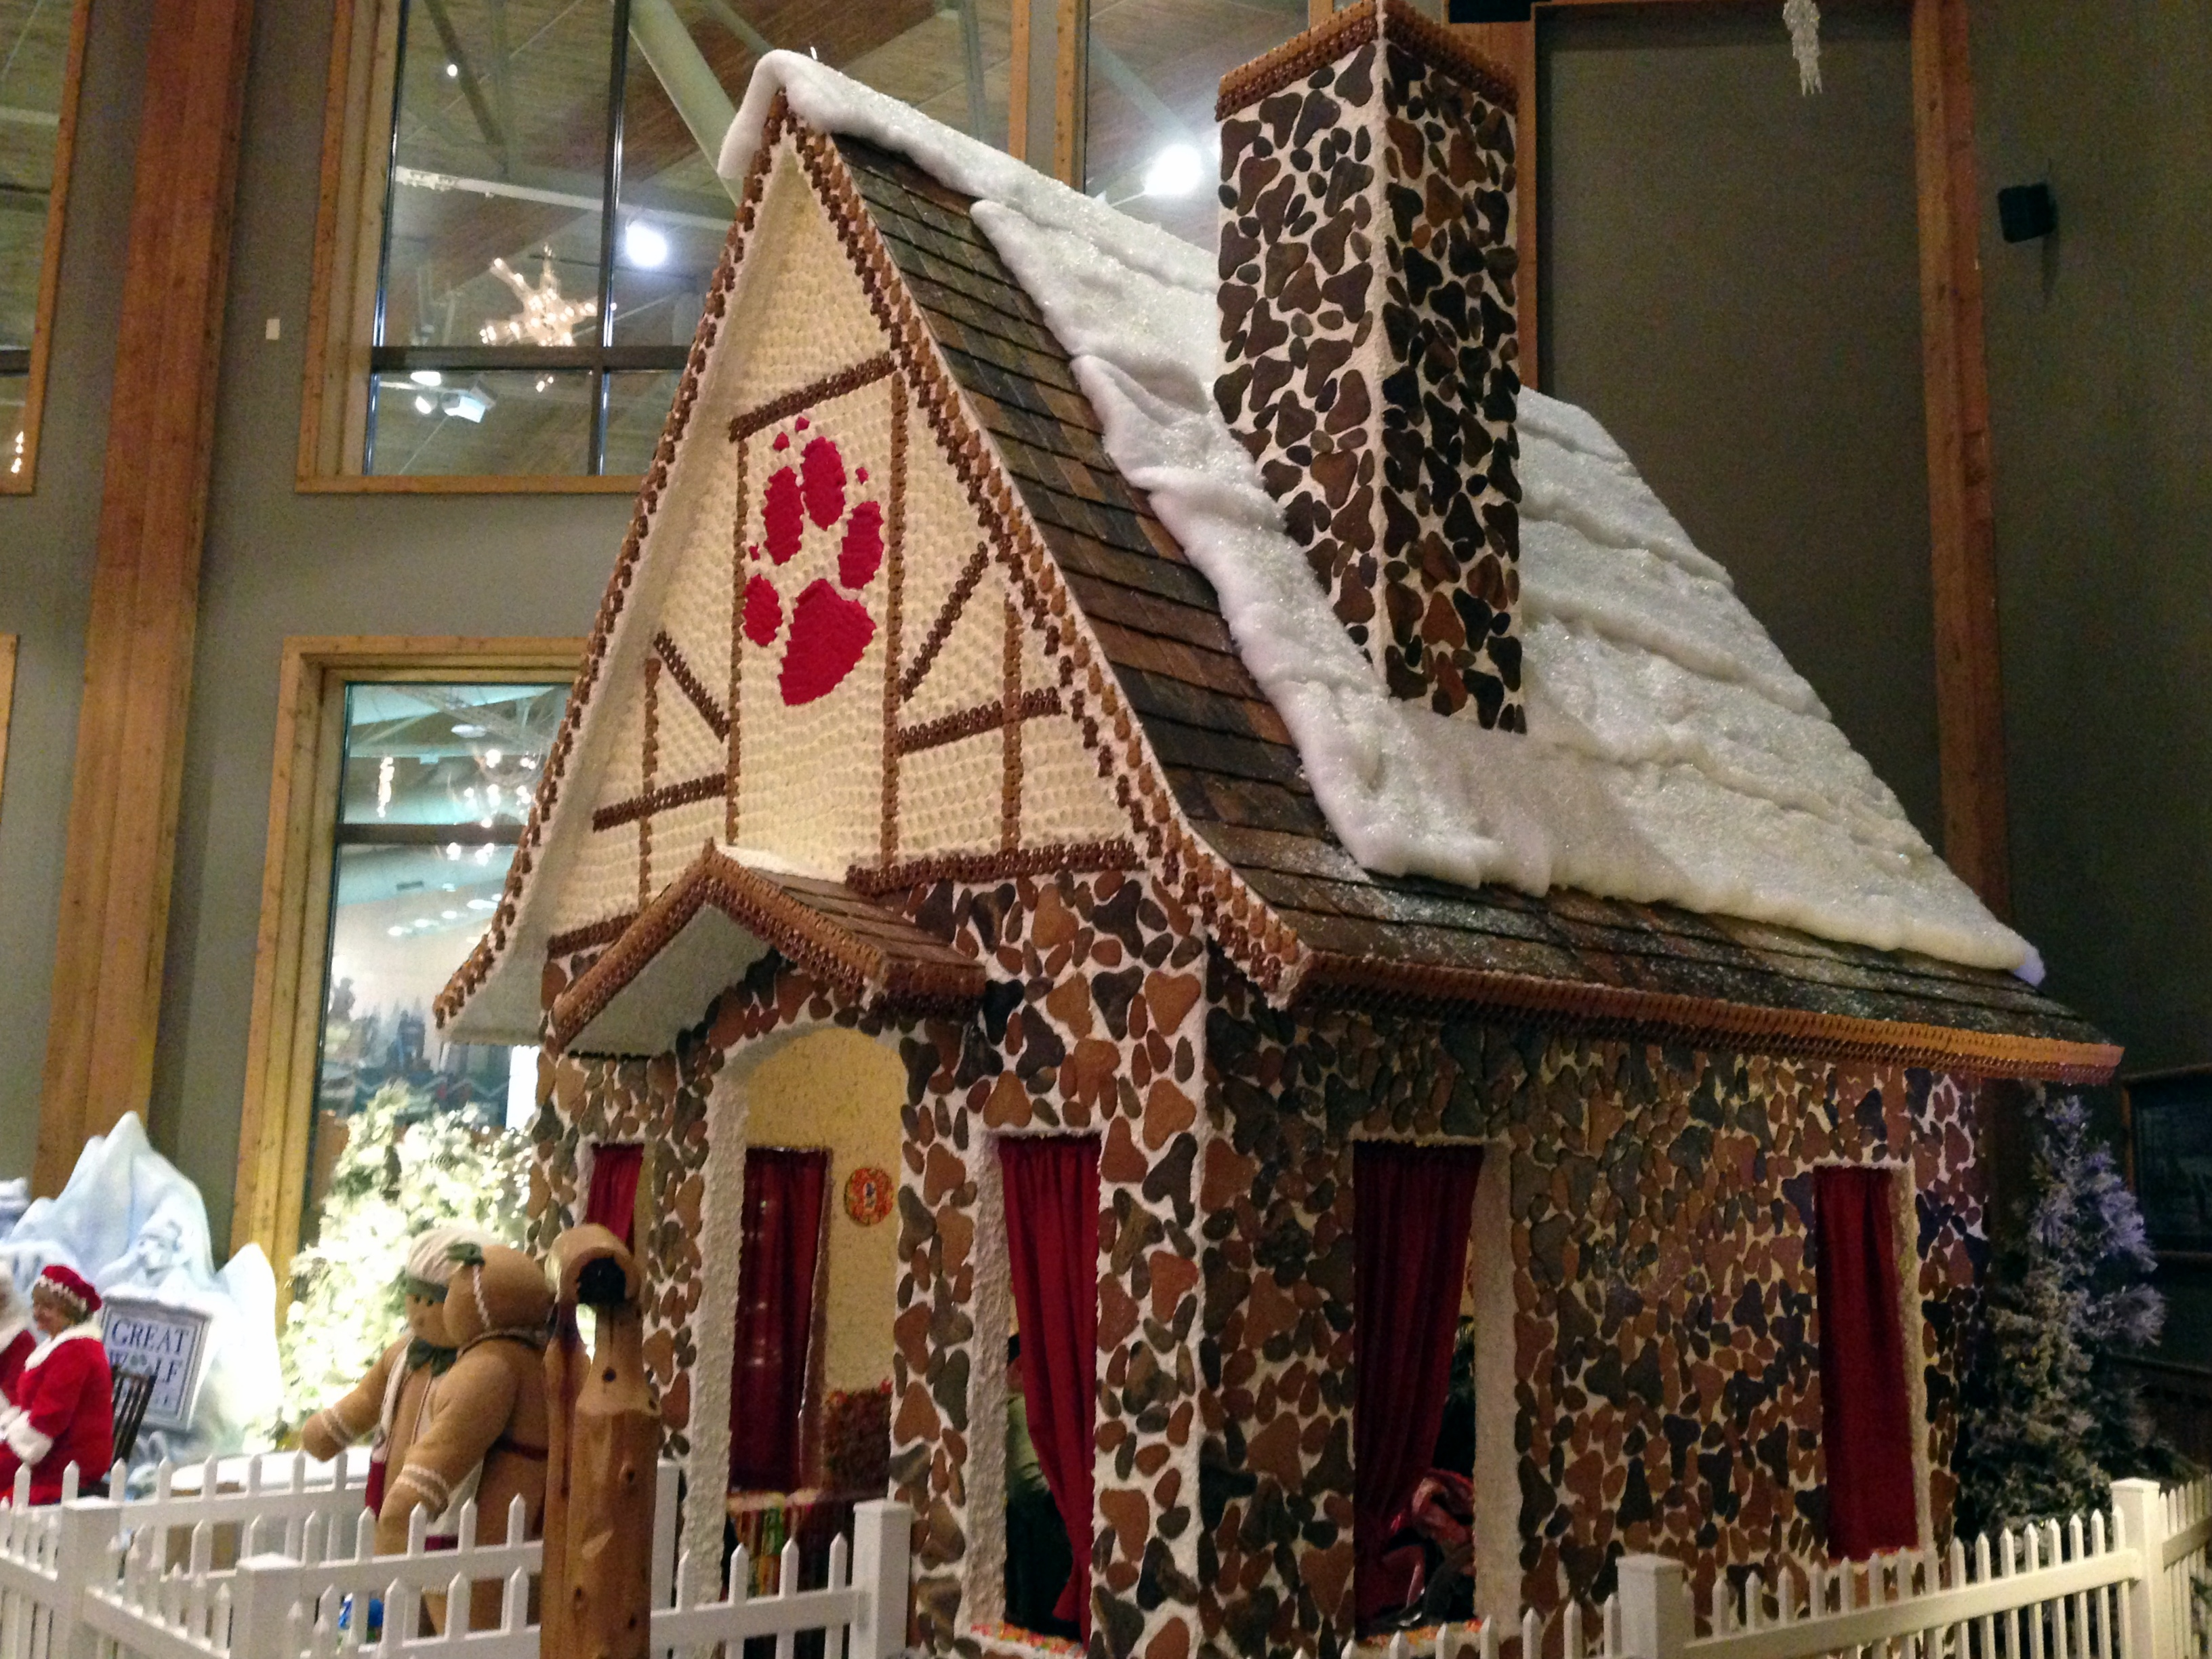 This Amazing Gingerbread House is Big Enough for a Family to Live In